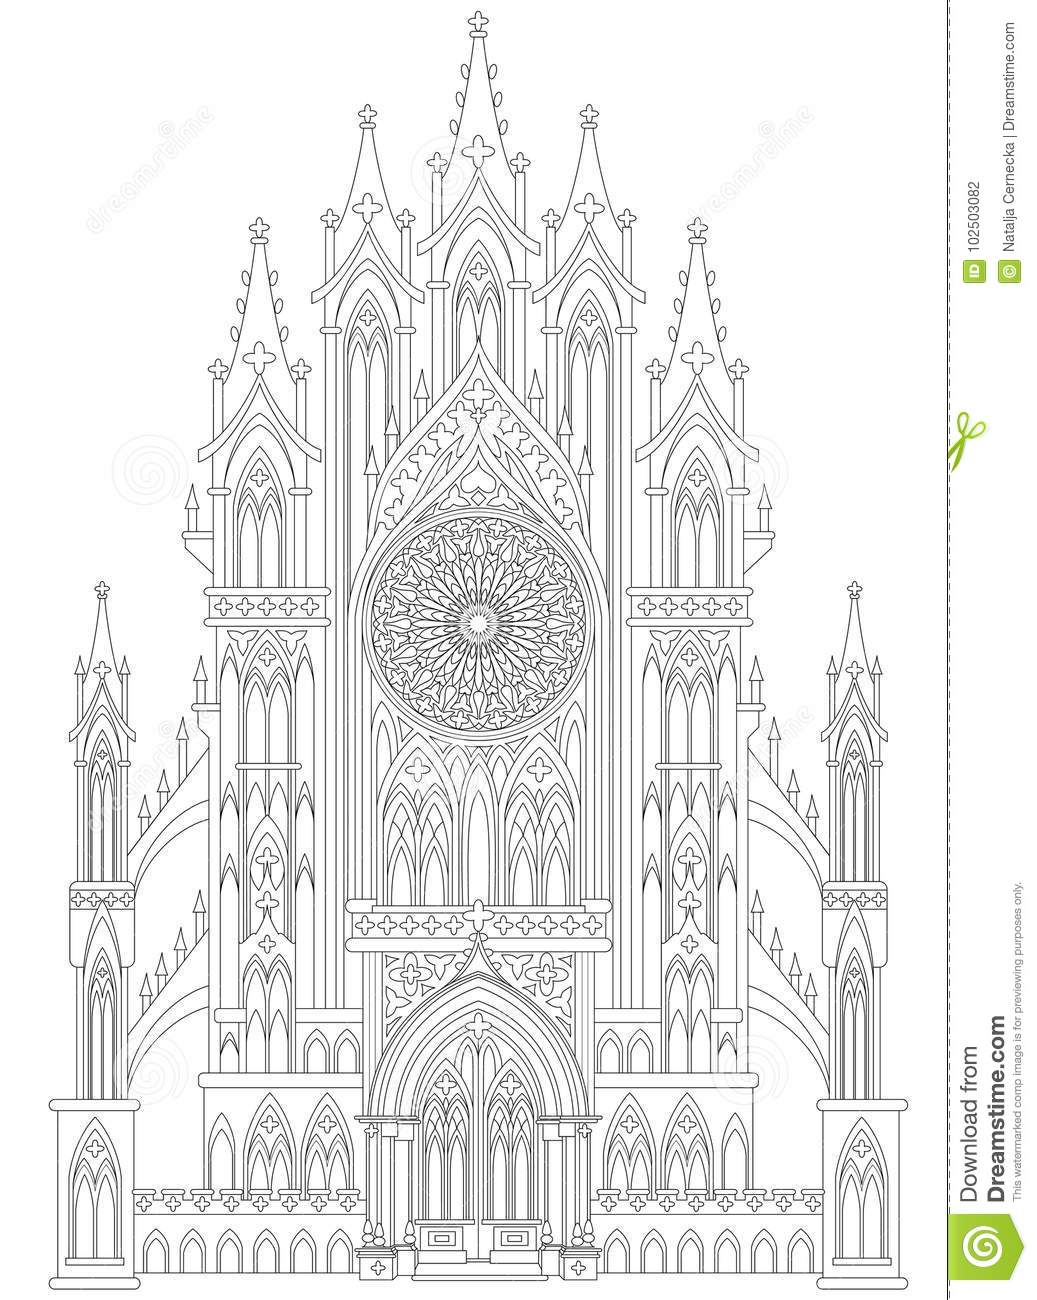 Fantasy Drawing Of Medieval Gothic Castle. Black And White